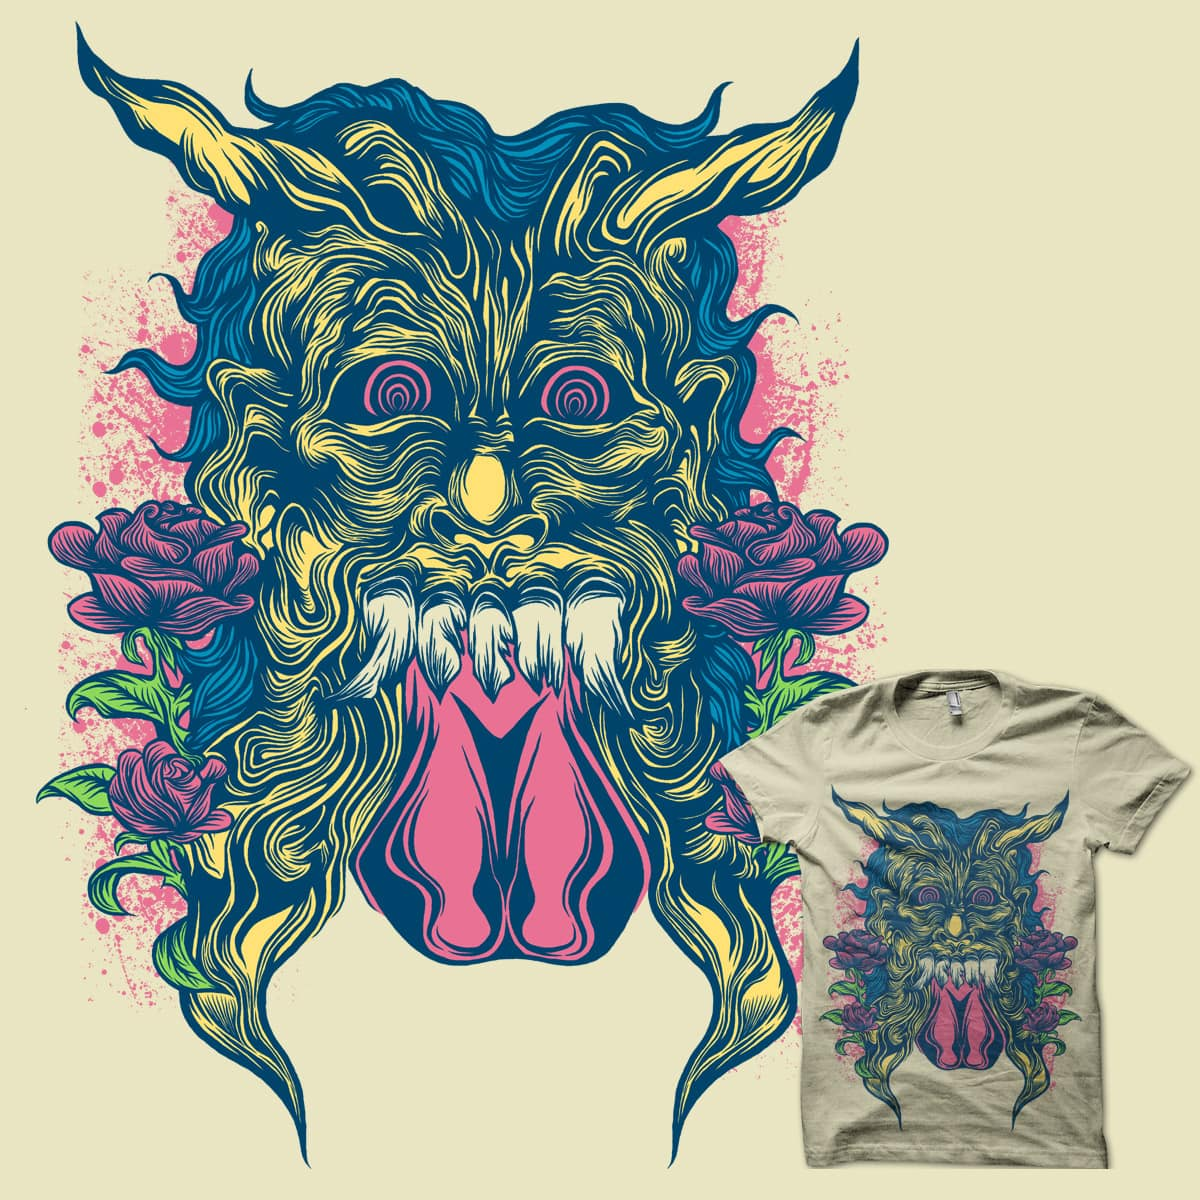 Leak by alfiandi on Threadless